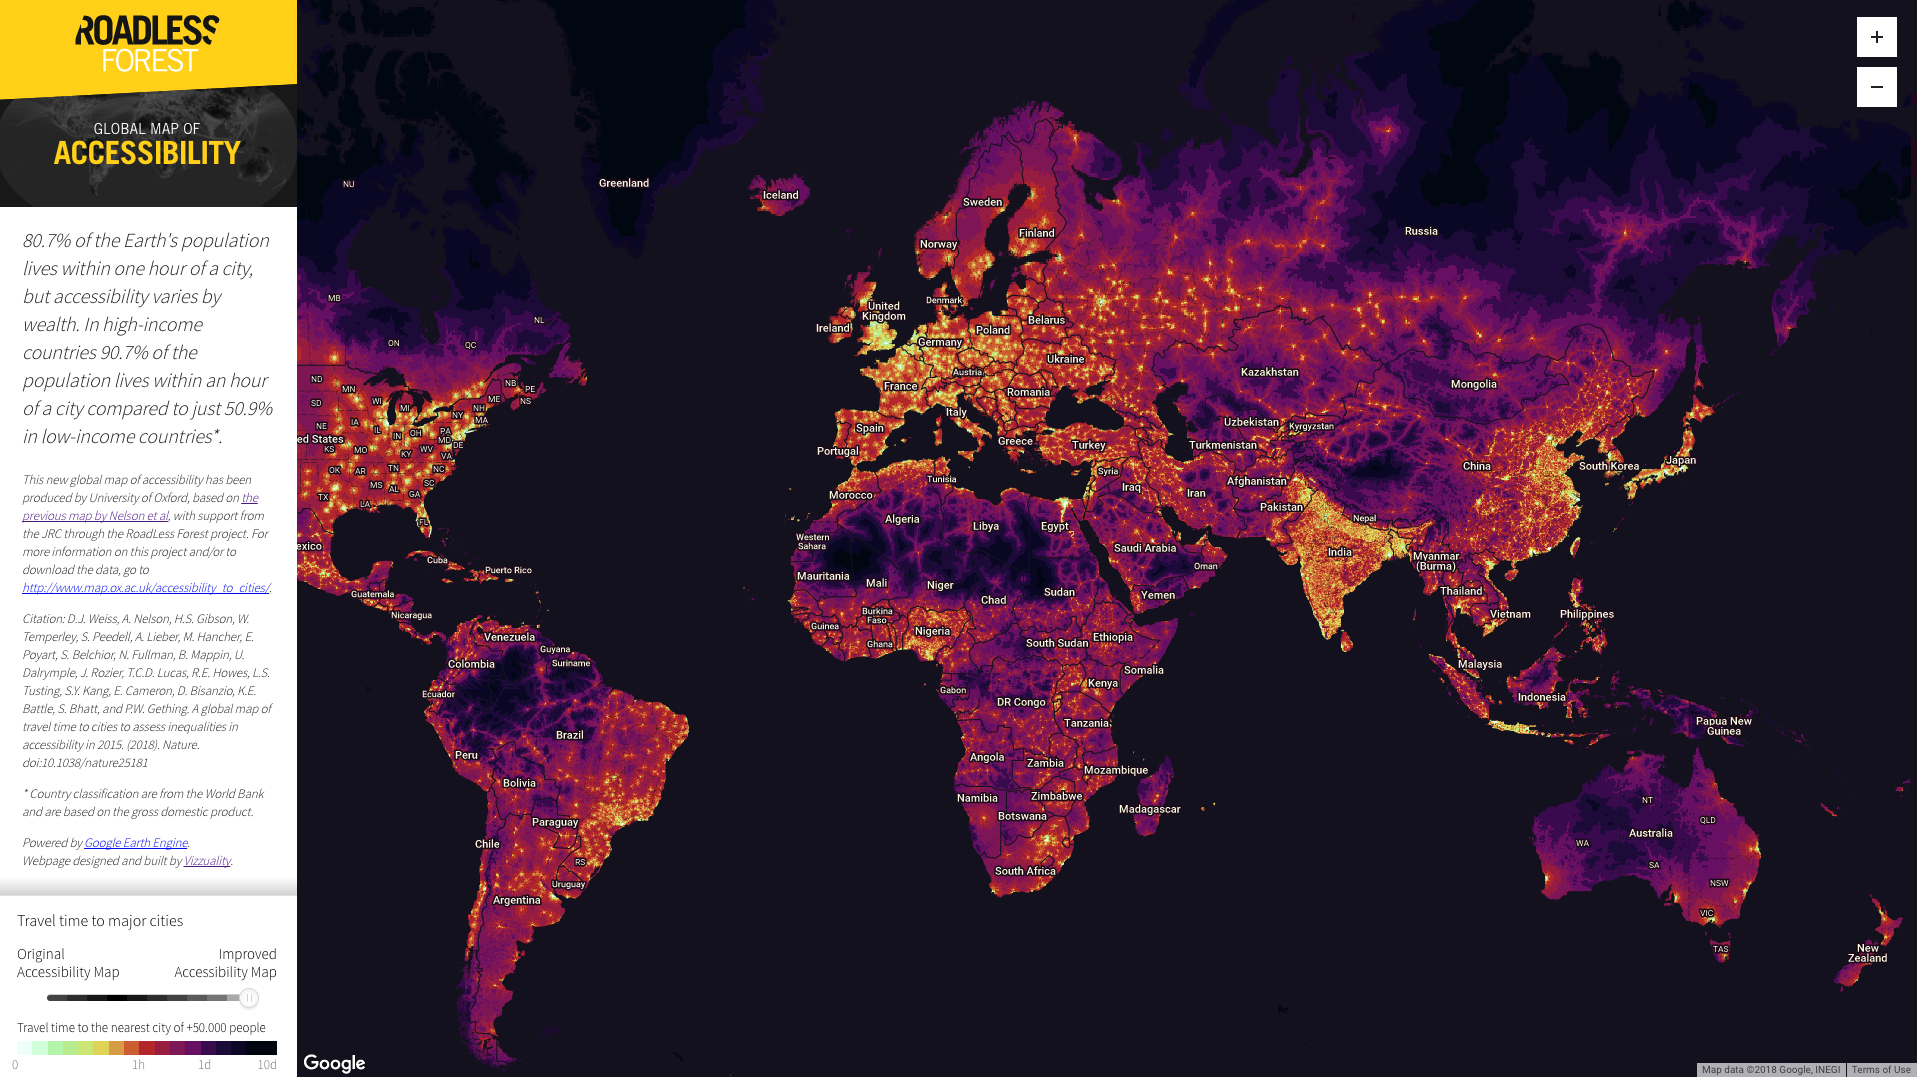 Global map of access to cities published by Nature.